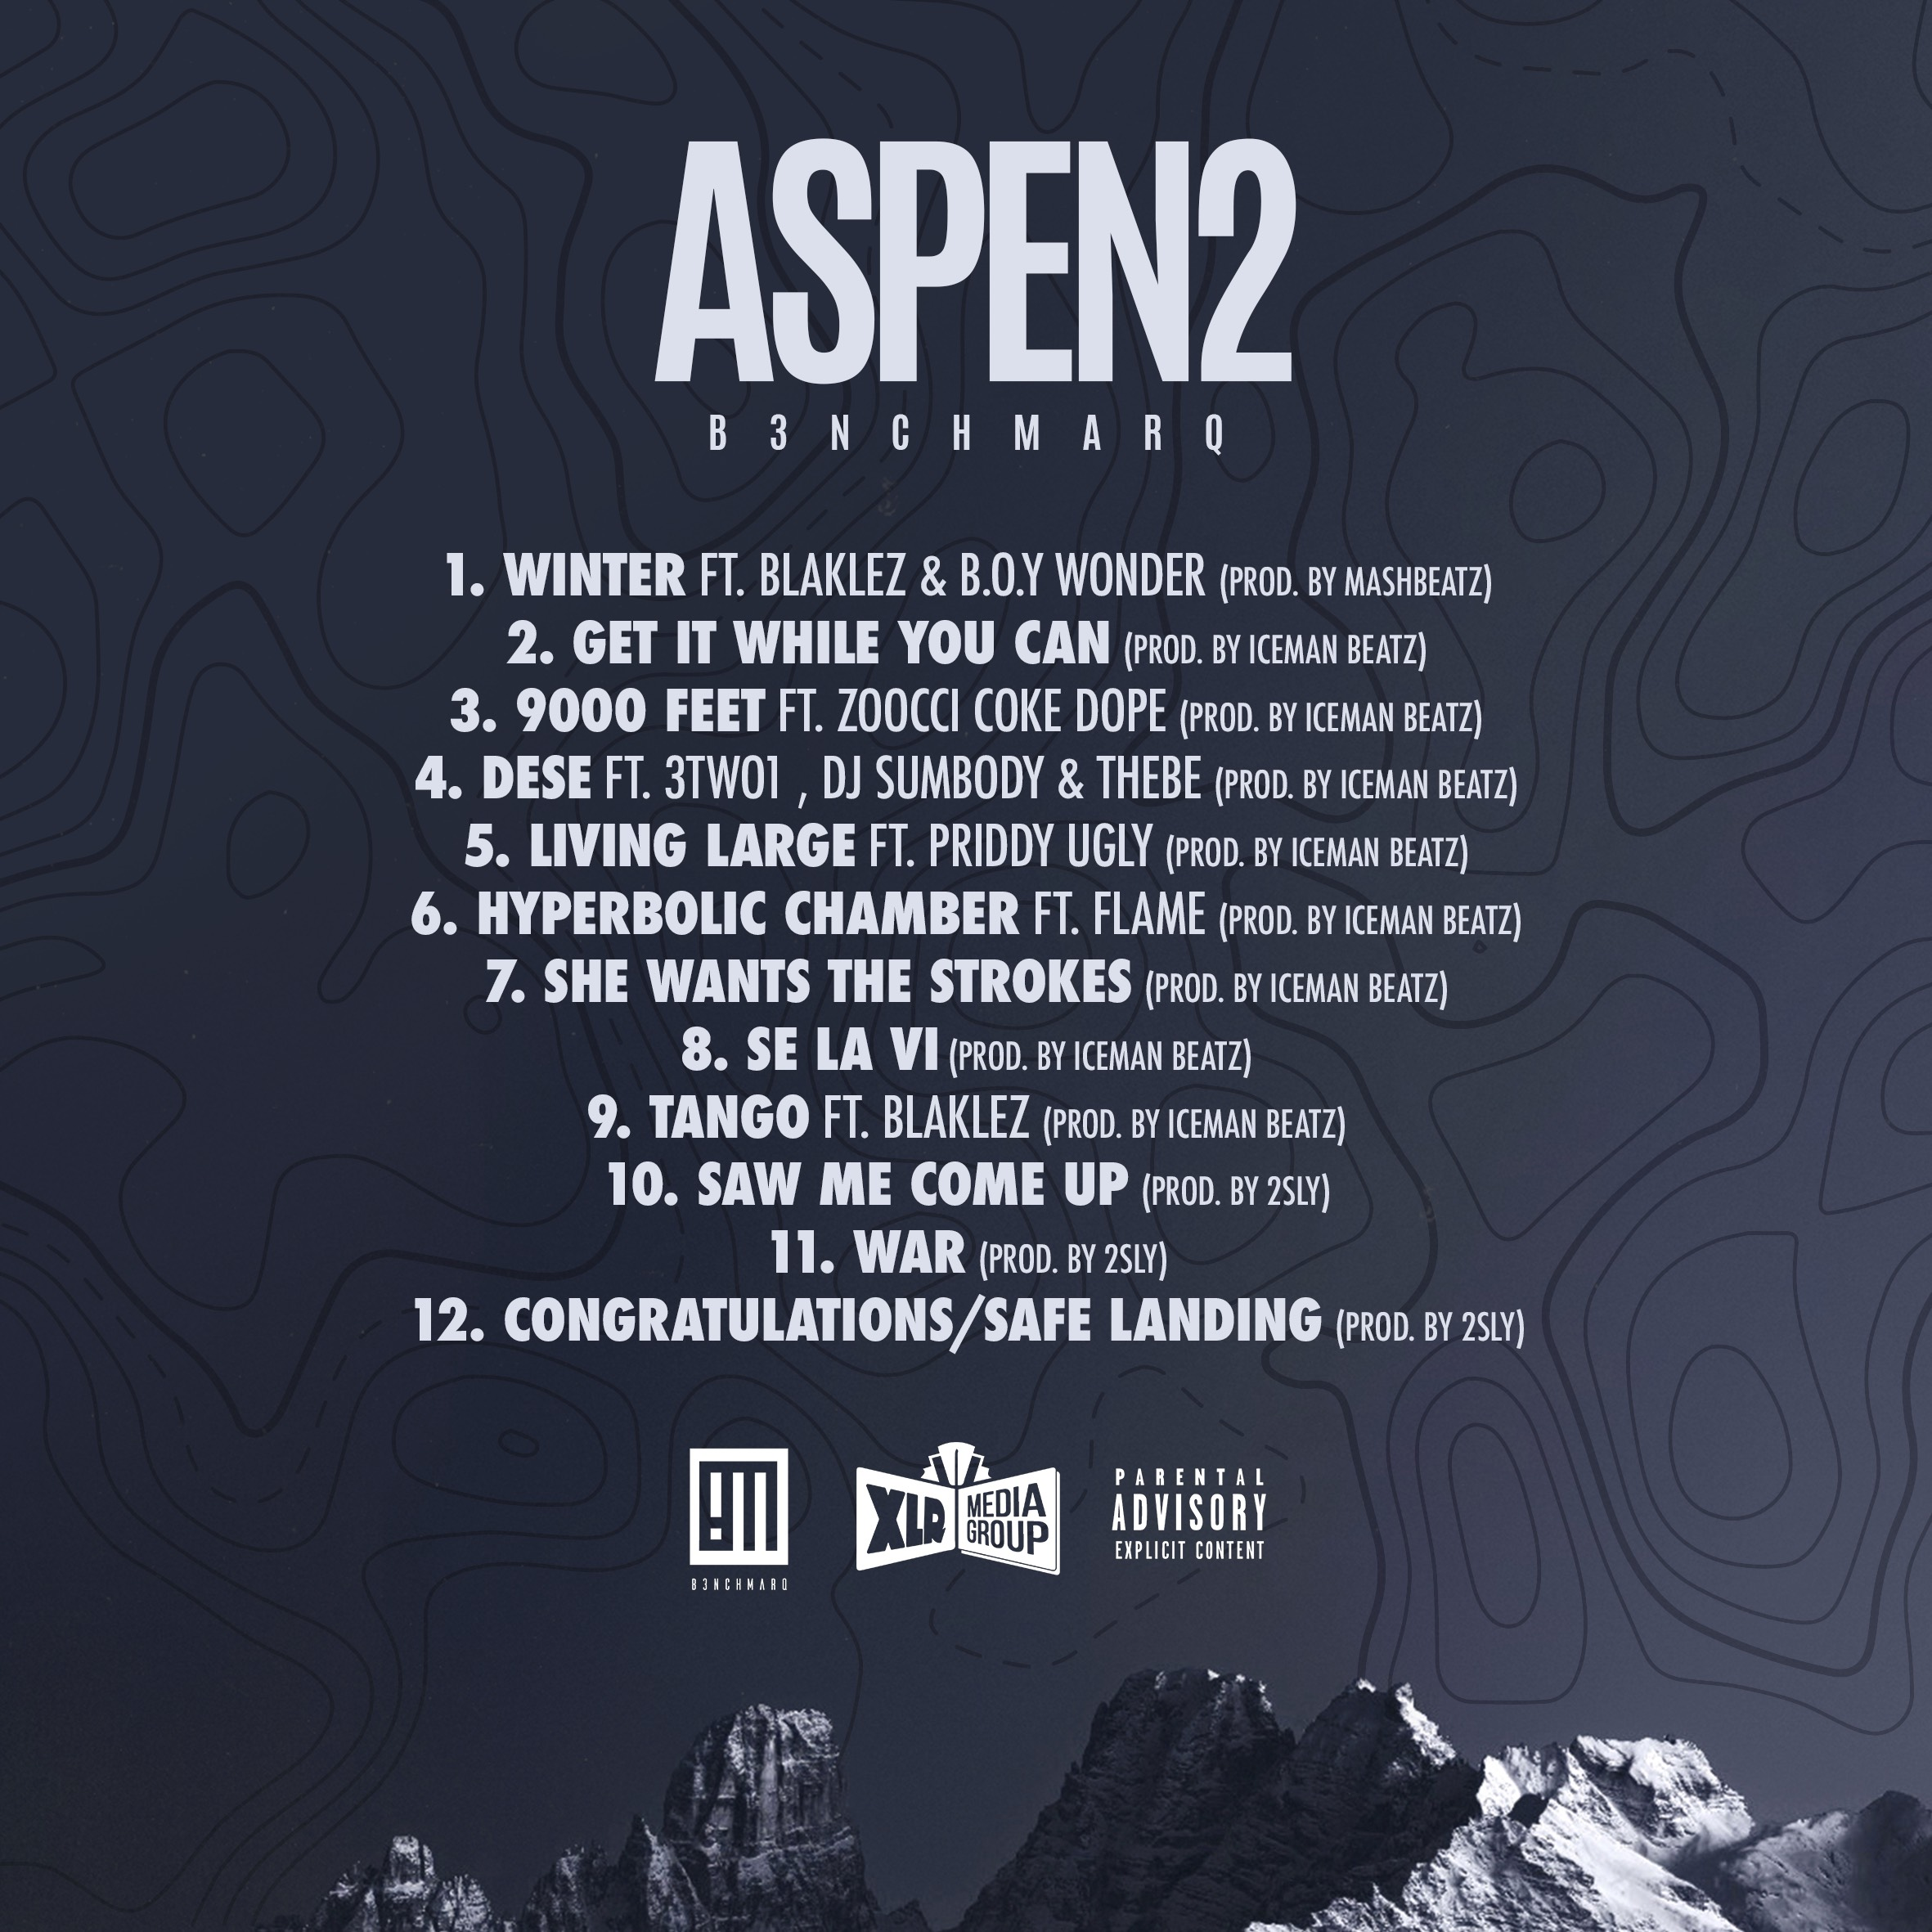 b3nchmarq B3nchMarQ Drop 'Aspen 2' Album Cover/Tracklist Plus New 'Hyperbolic Chamber' Joint Ft. Flame [Listen] Aspen2 Cover Option2Artboard 1 copy